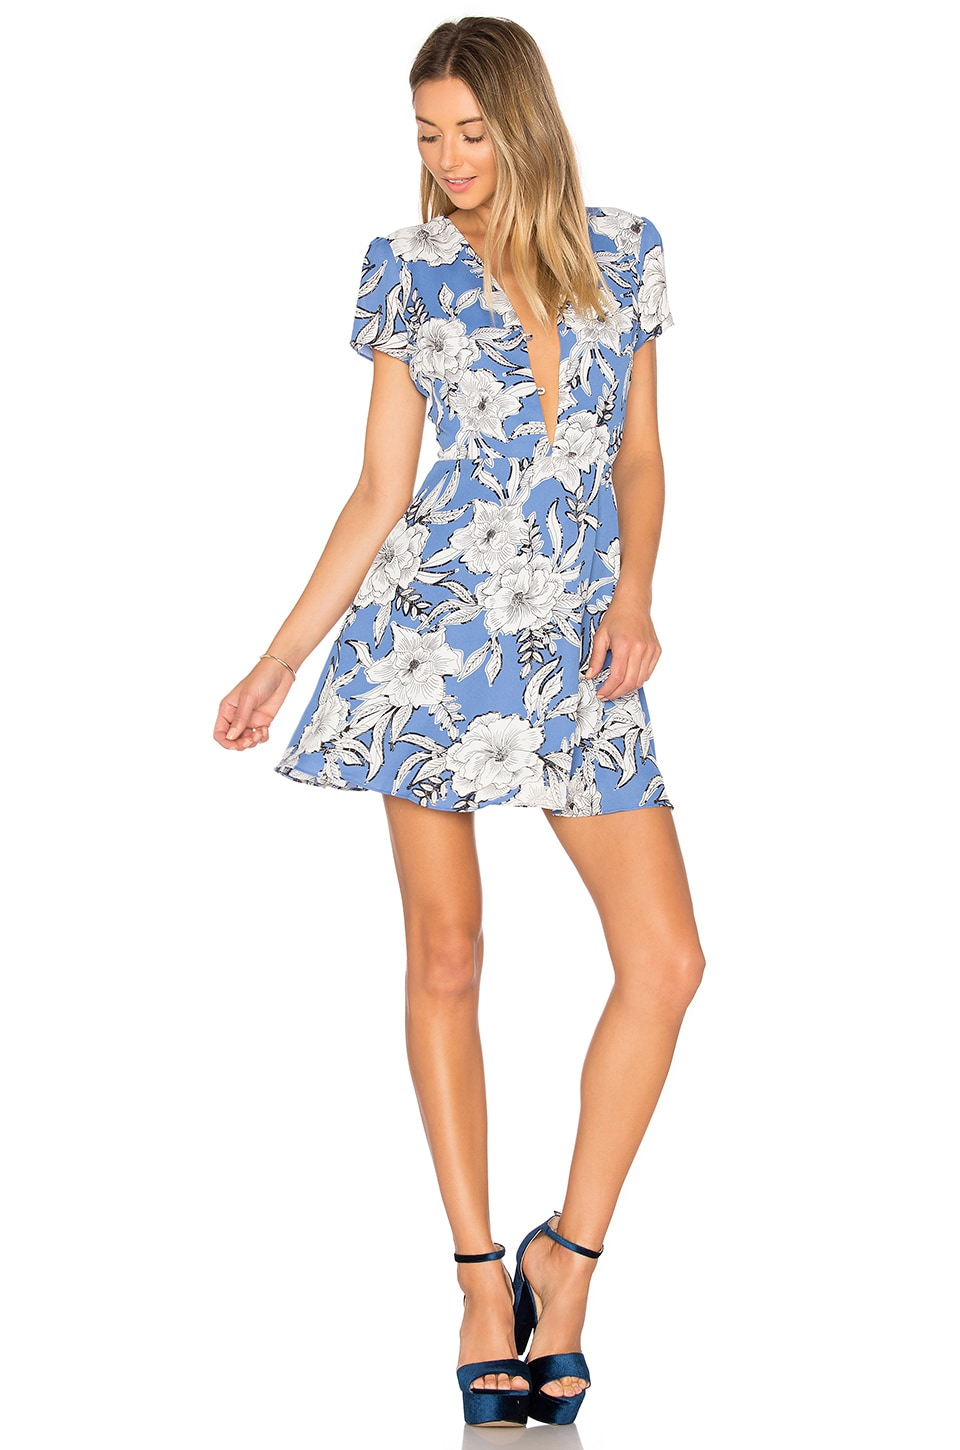 Lovers + Friends Cassidy Dress in Riviera Floral